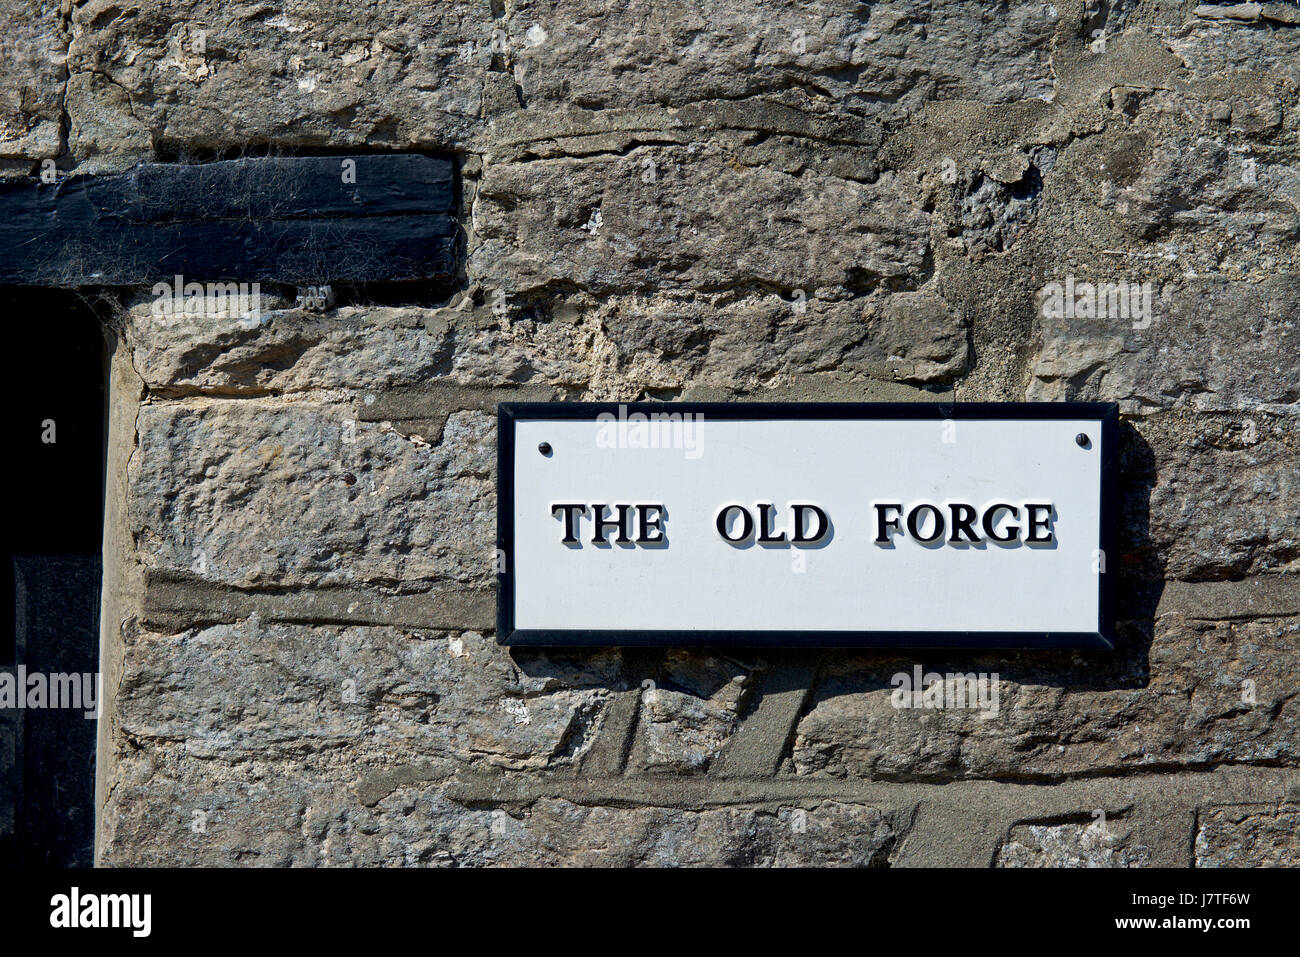 House called The Old Forge, England UK - Stock Image